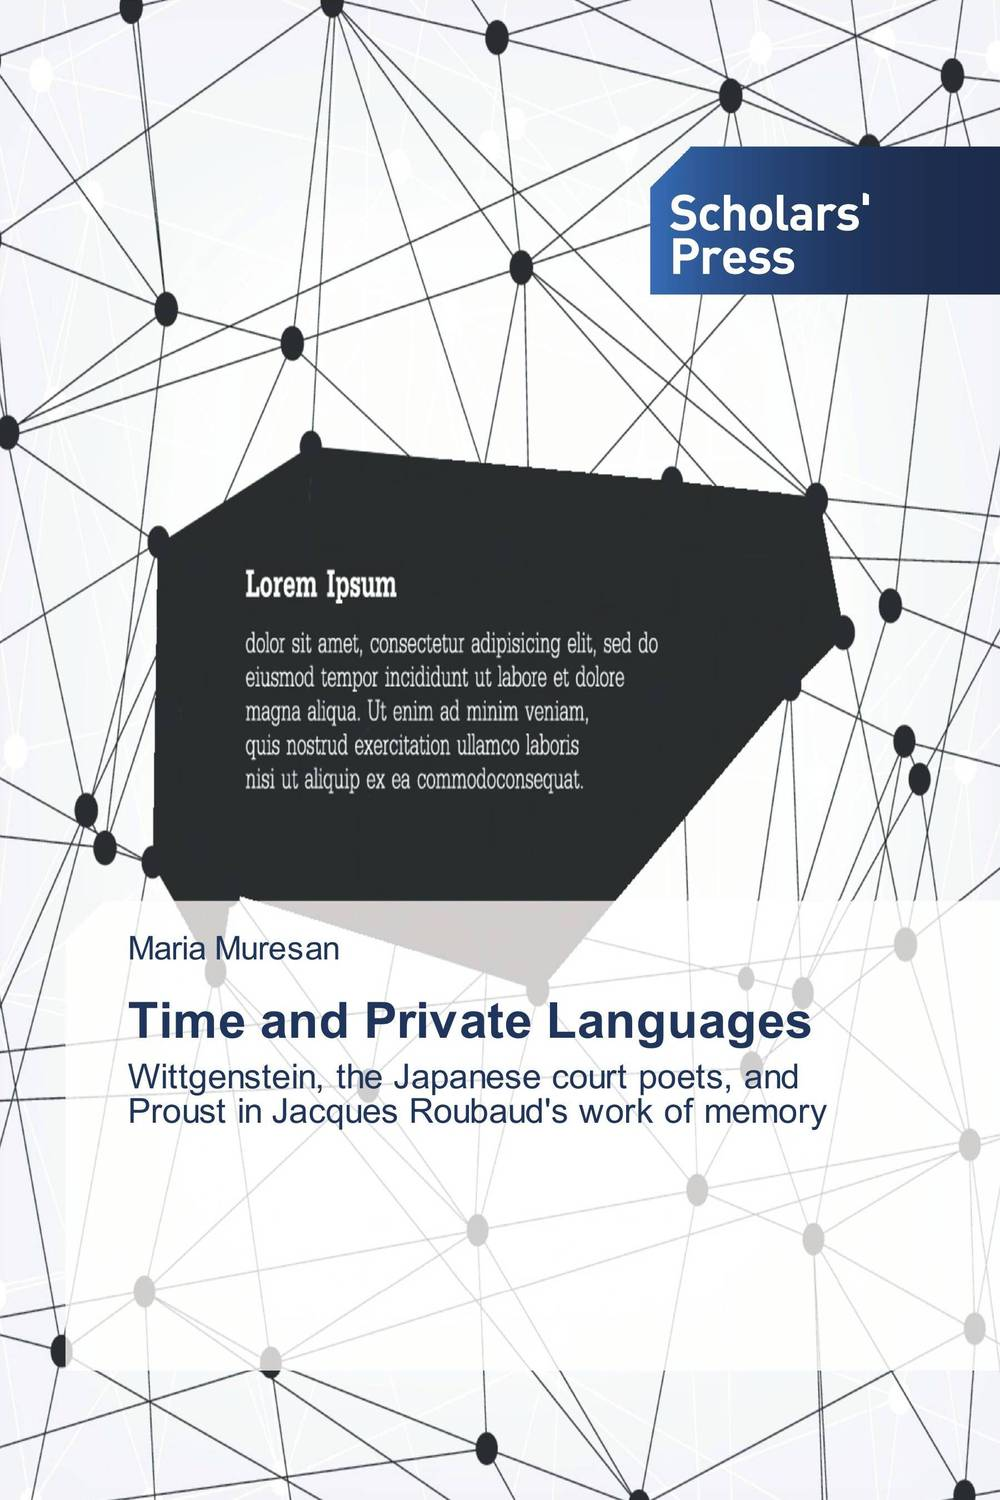 Time and Private Languages